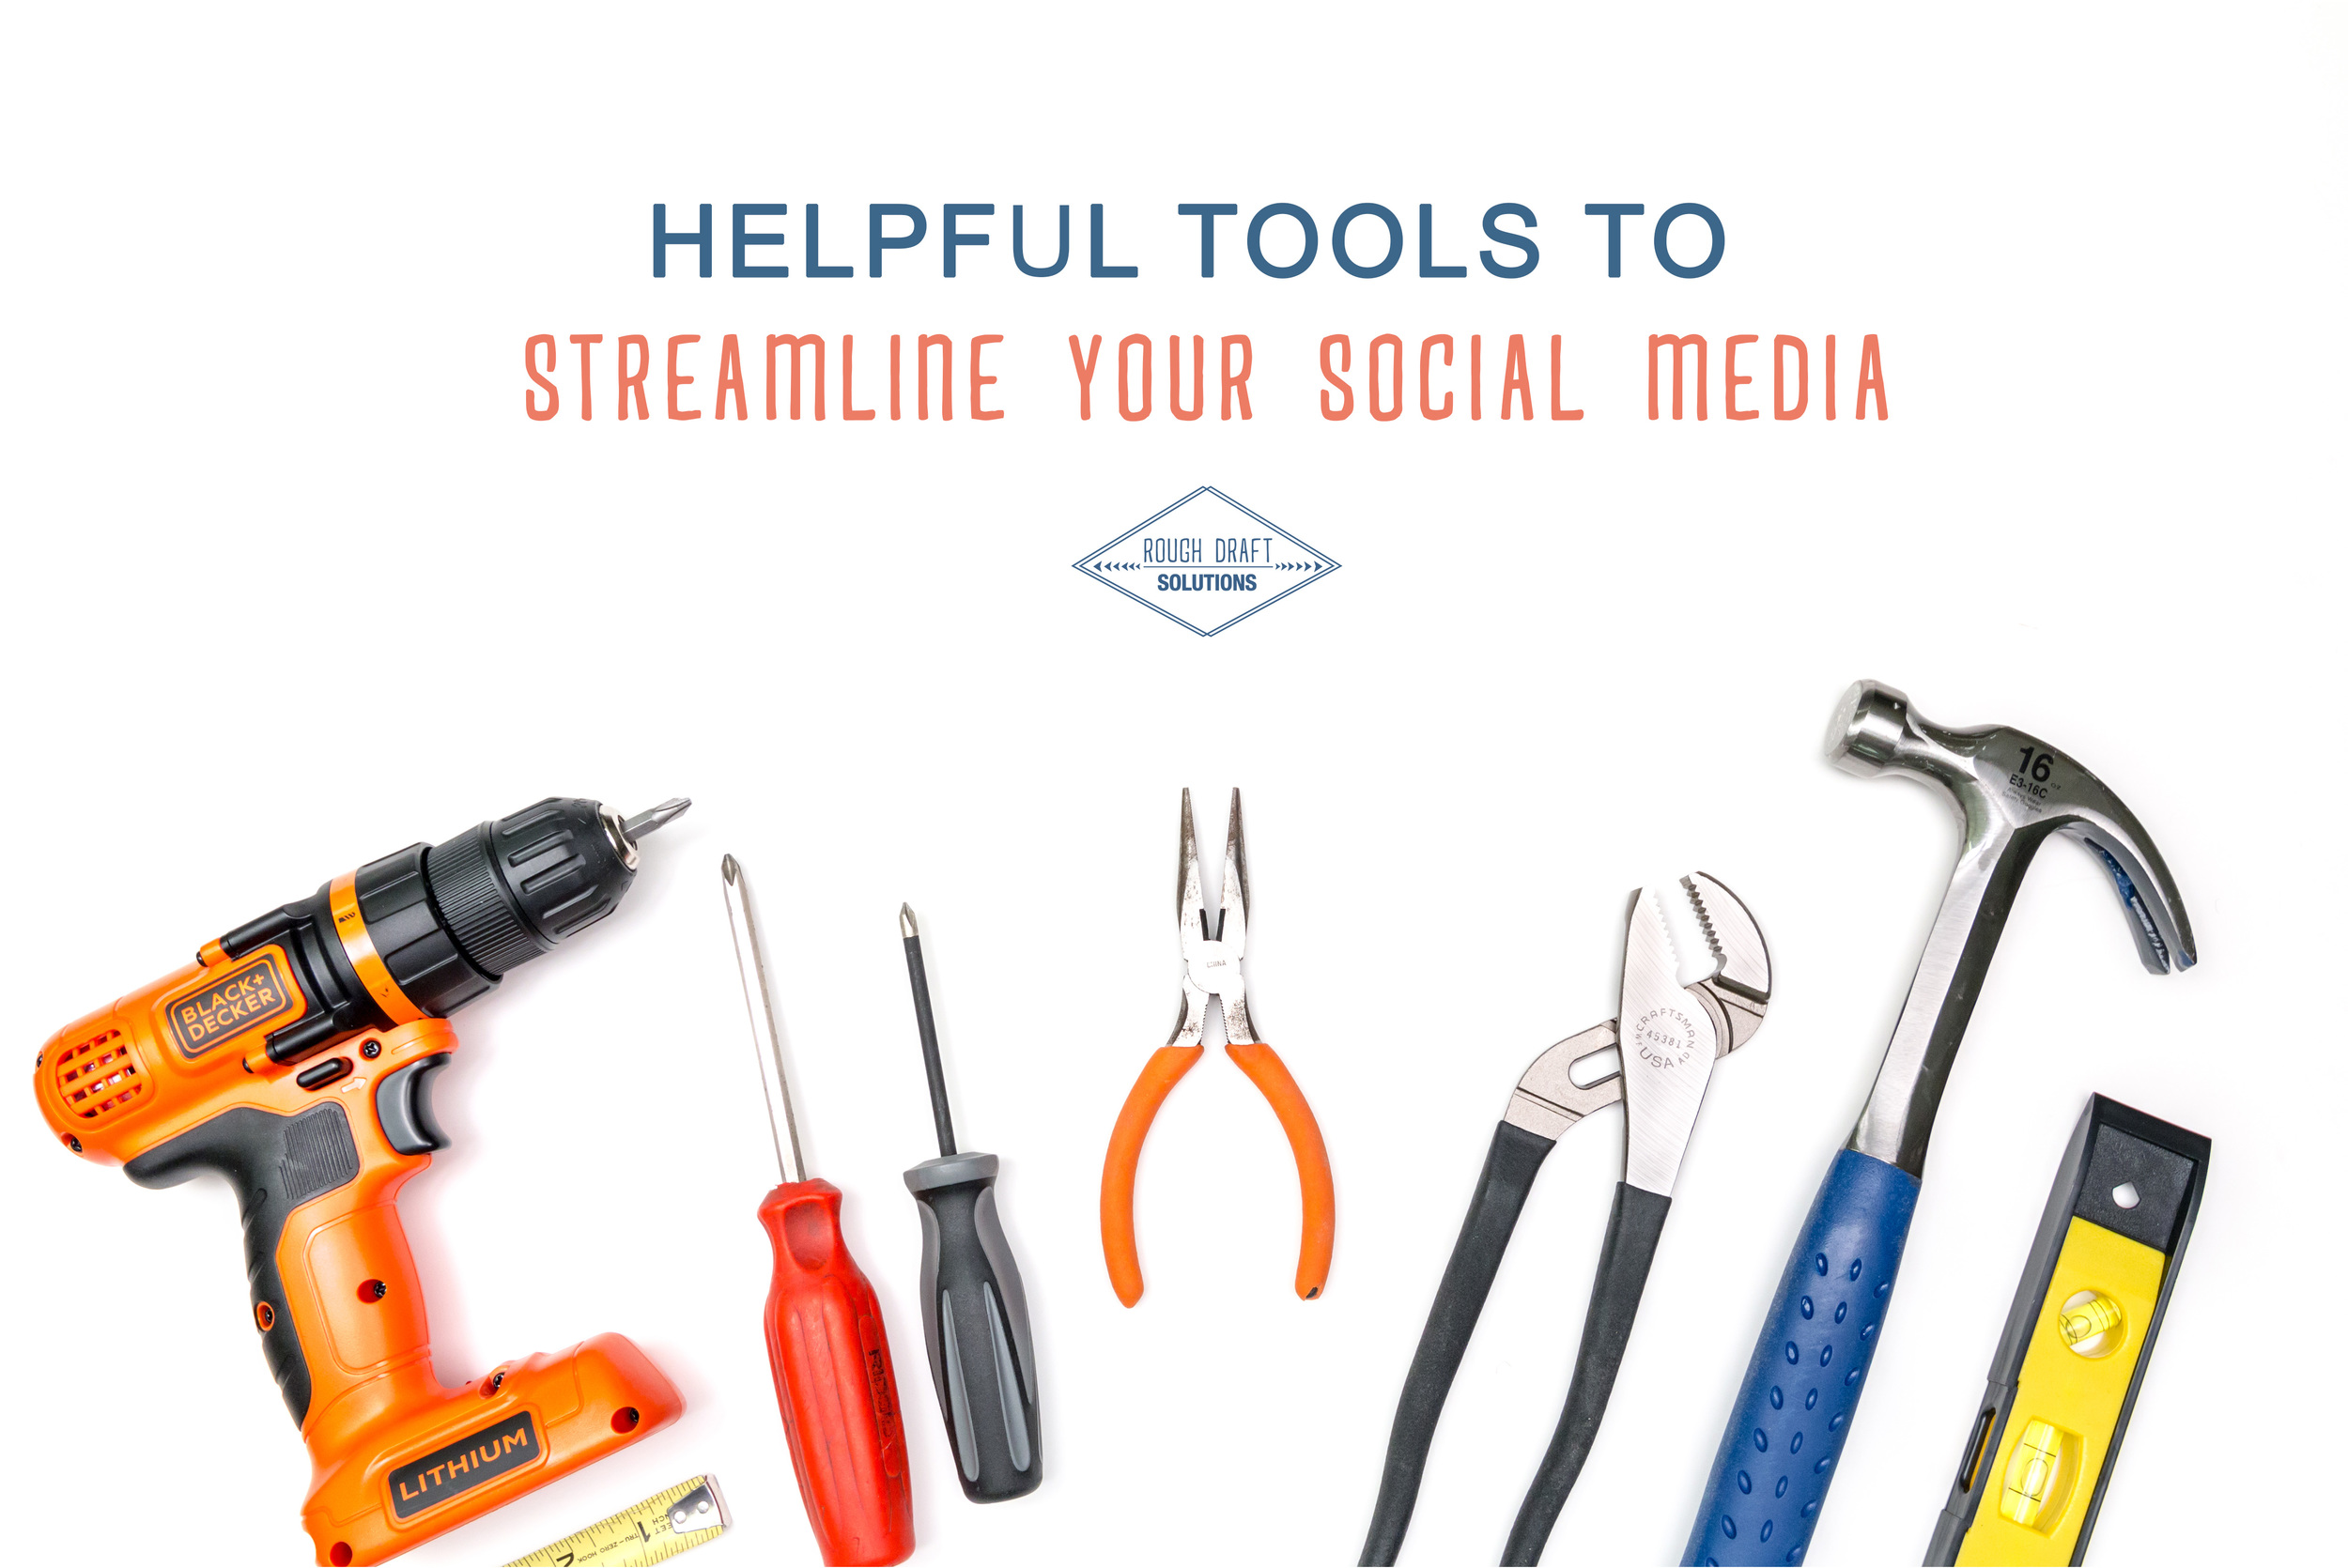 Helpful Tools to Streamline Your Social Media